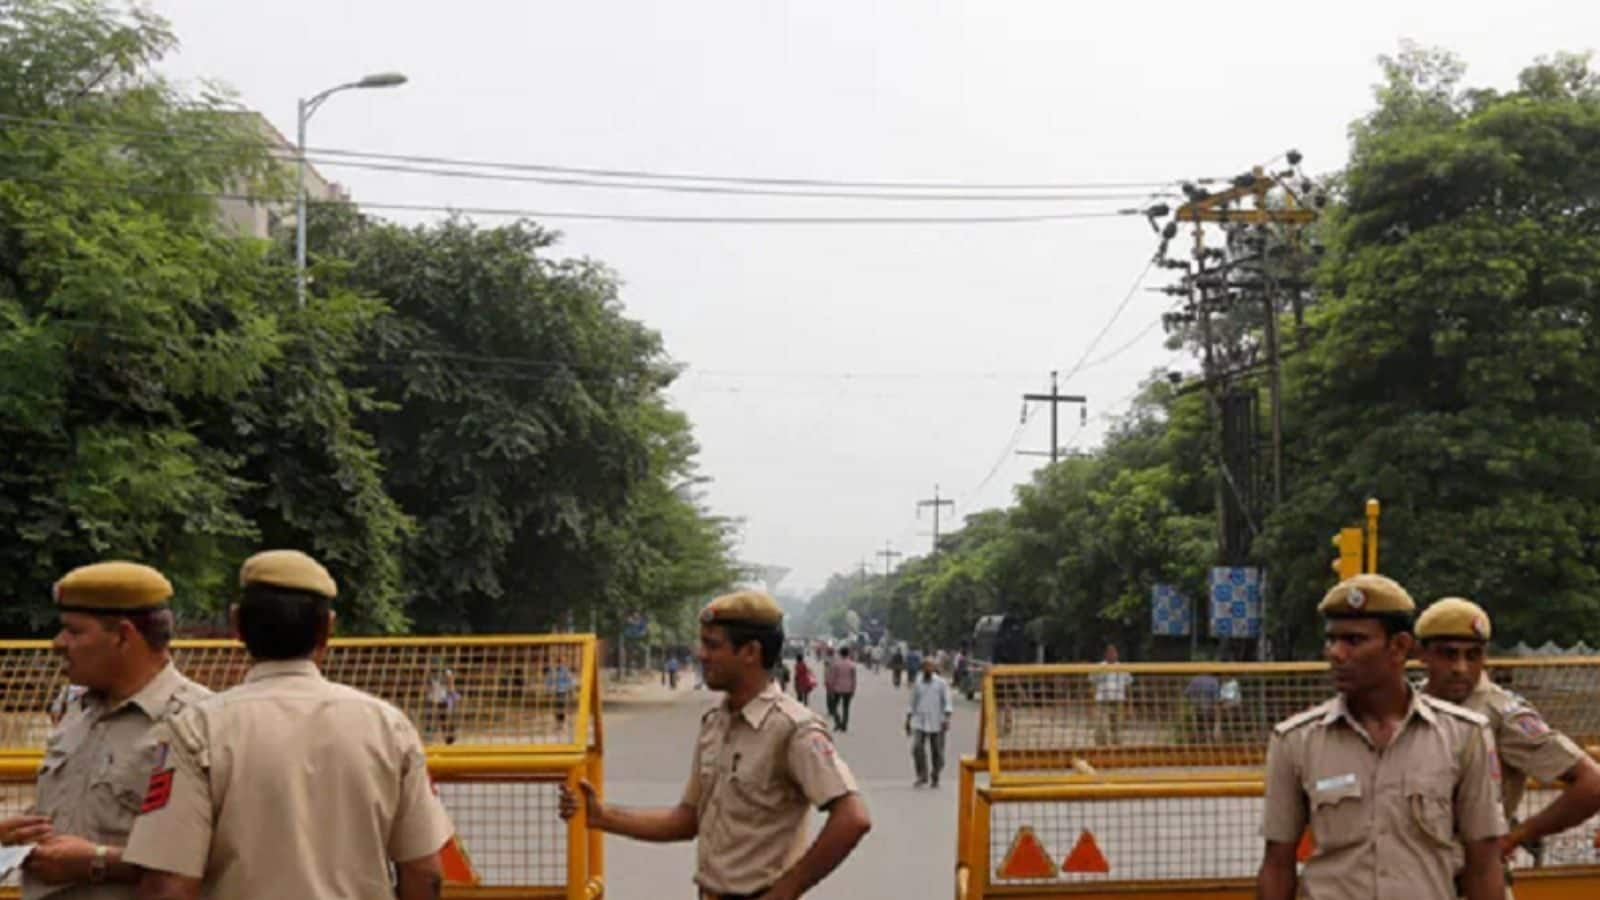 Over 2.90 Lakh Challans Issued for Covid Norm Violations in Delhi Between April 19-Sep 17 This Year